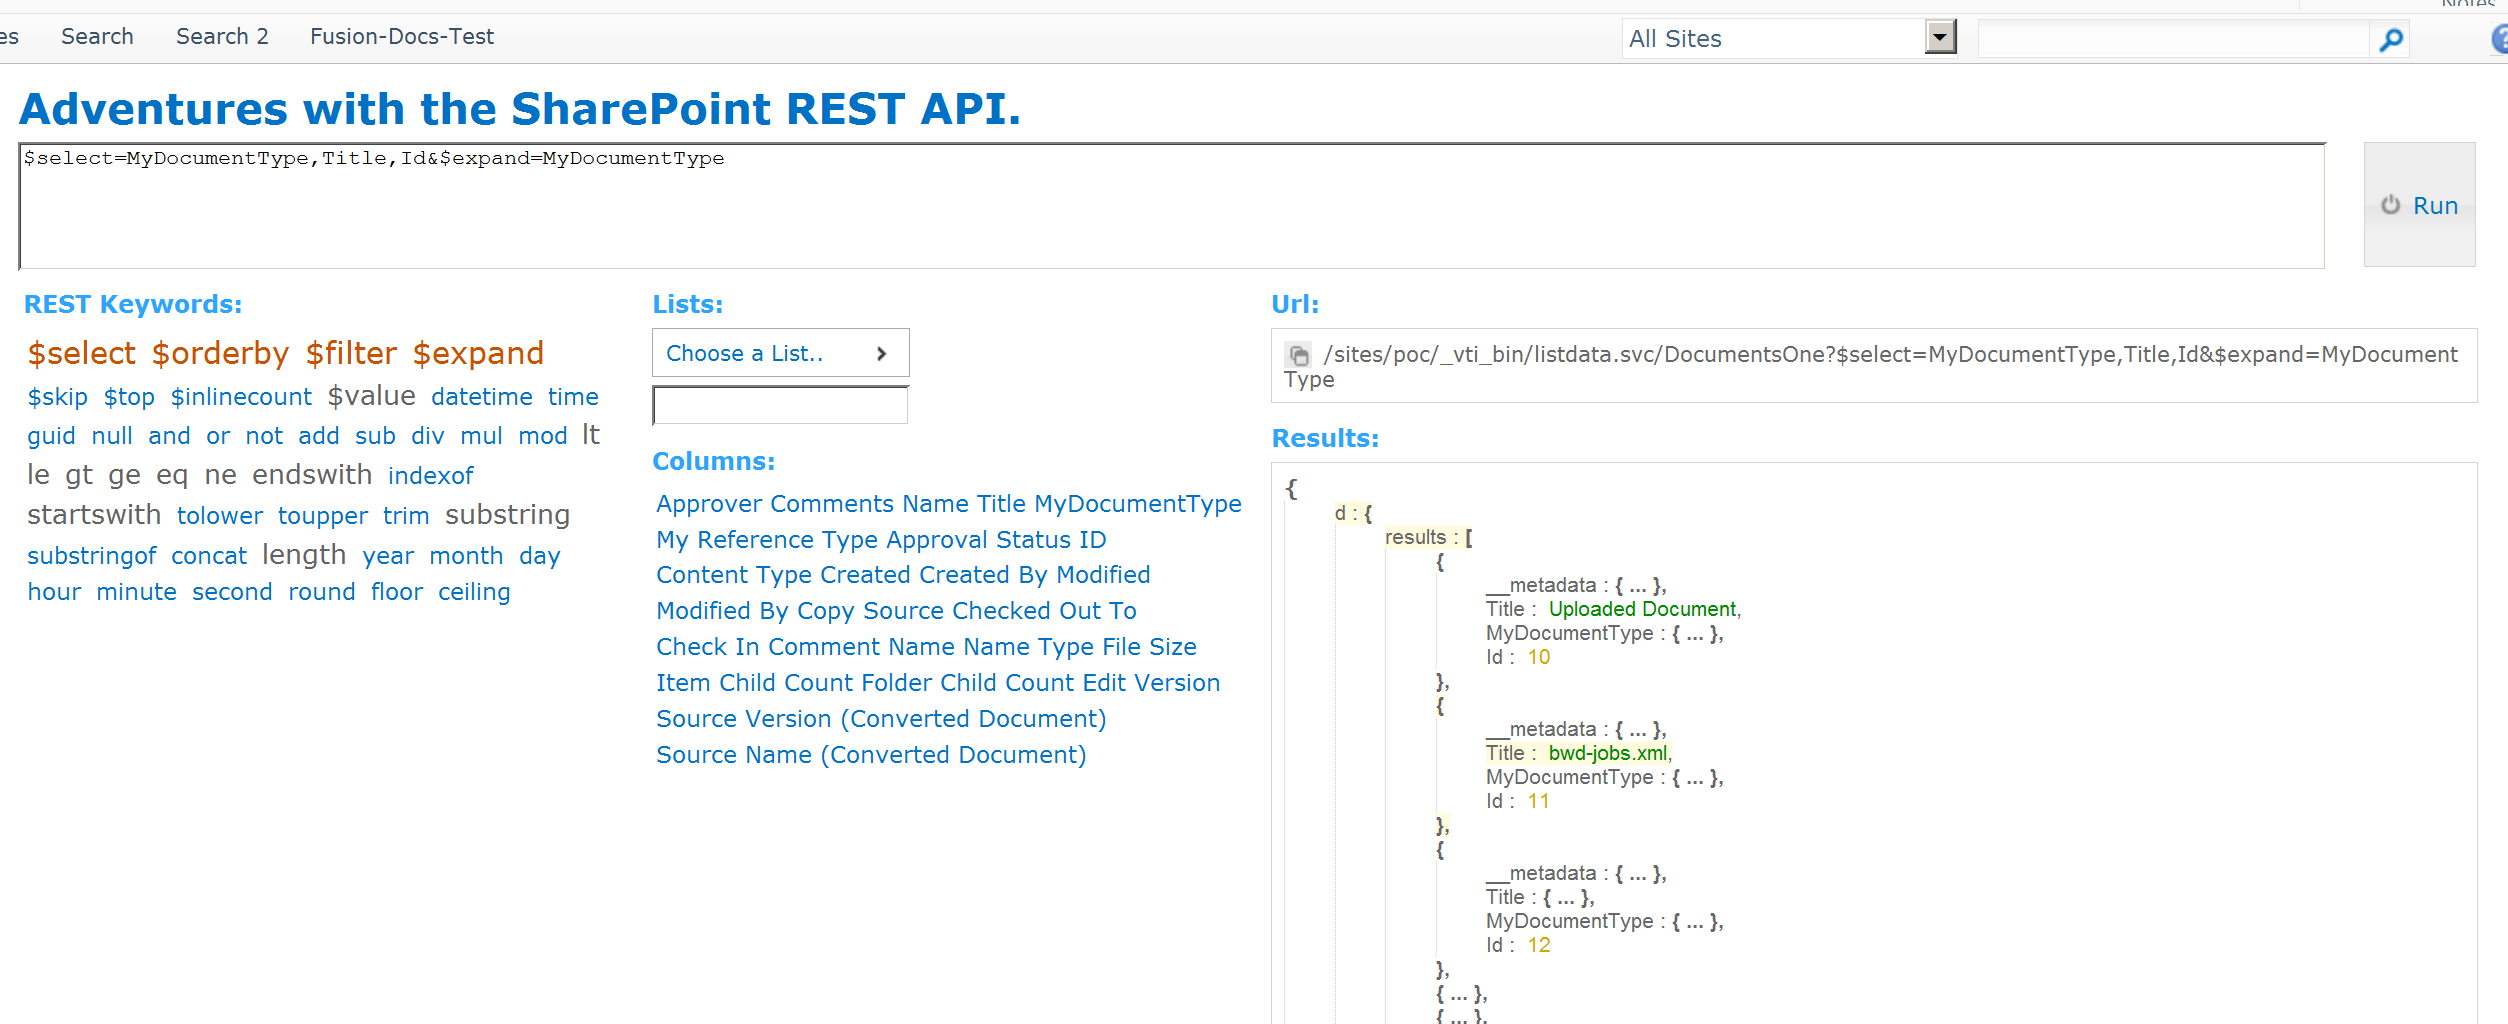 SharePoint: Adventures with the REST API Part 1